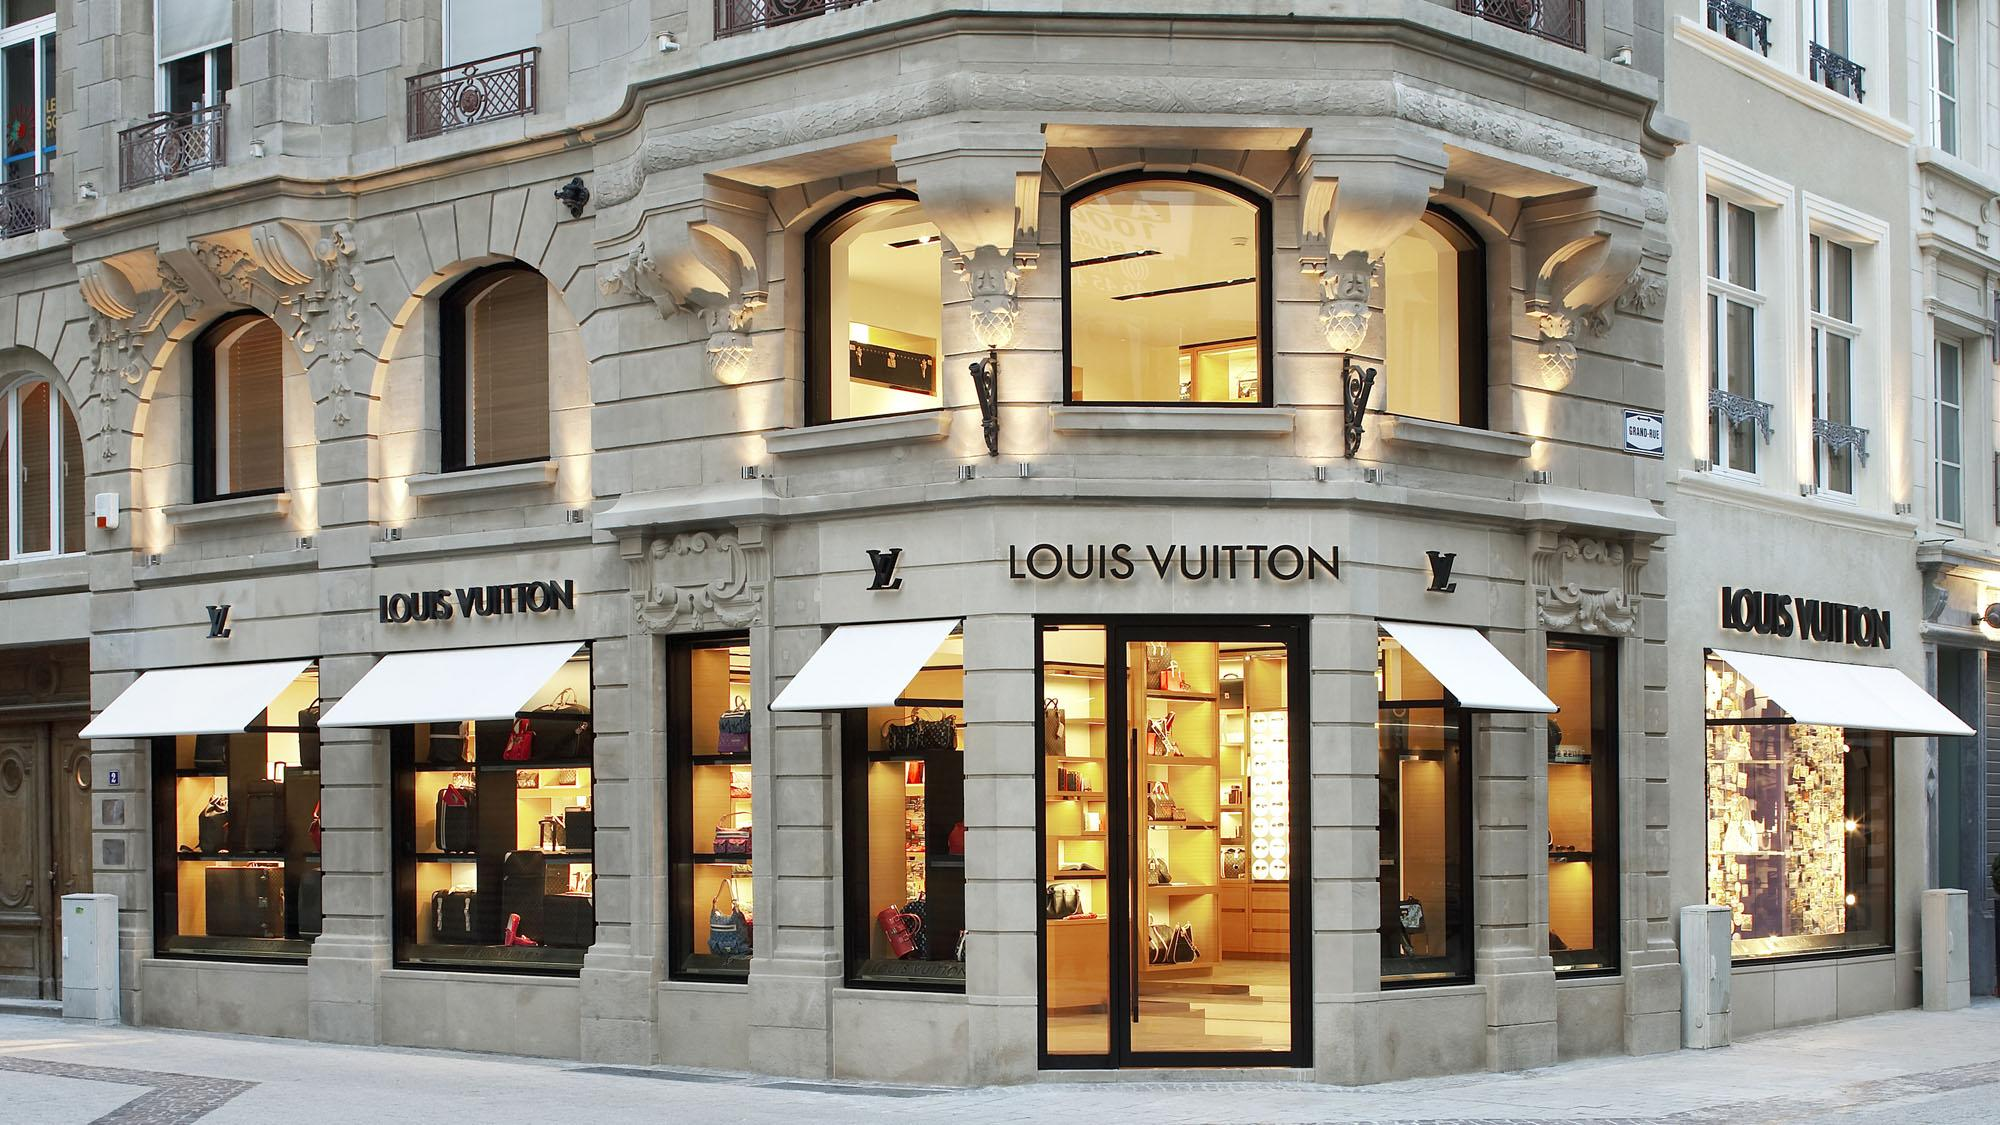 Ouverture Magasin Luxembourg Magasin Louis Vuitton Luxembourg Luxembourg Louis Vuitton